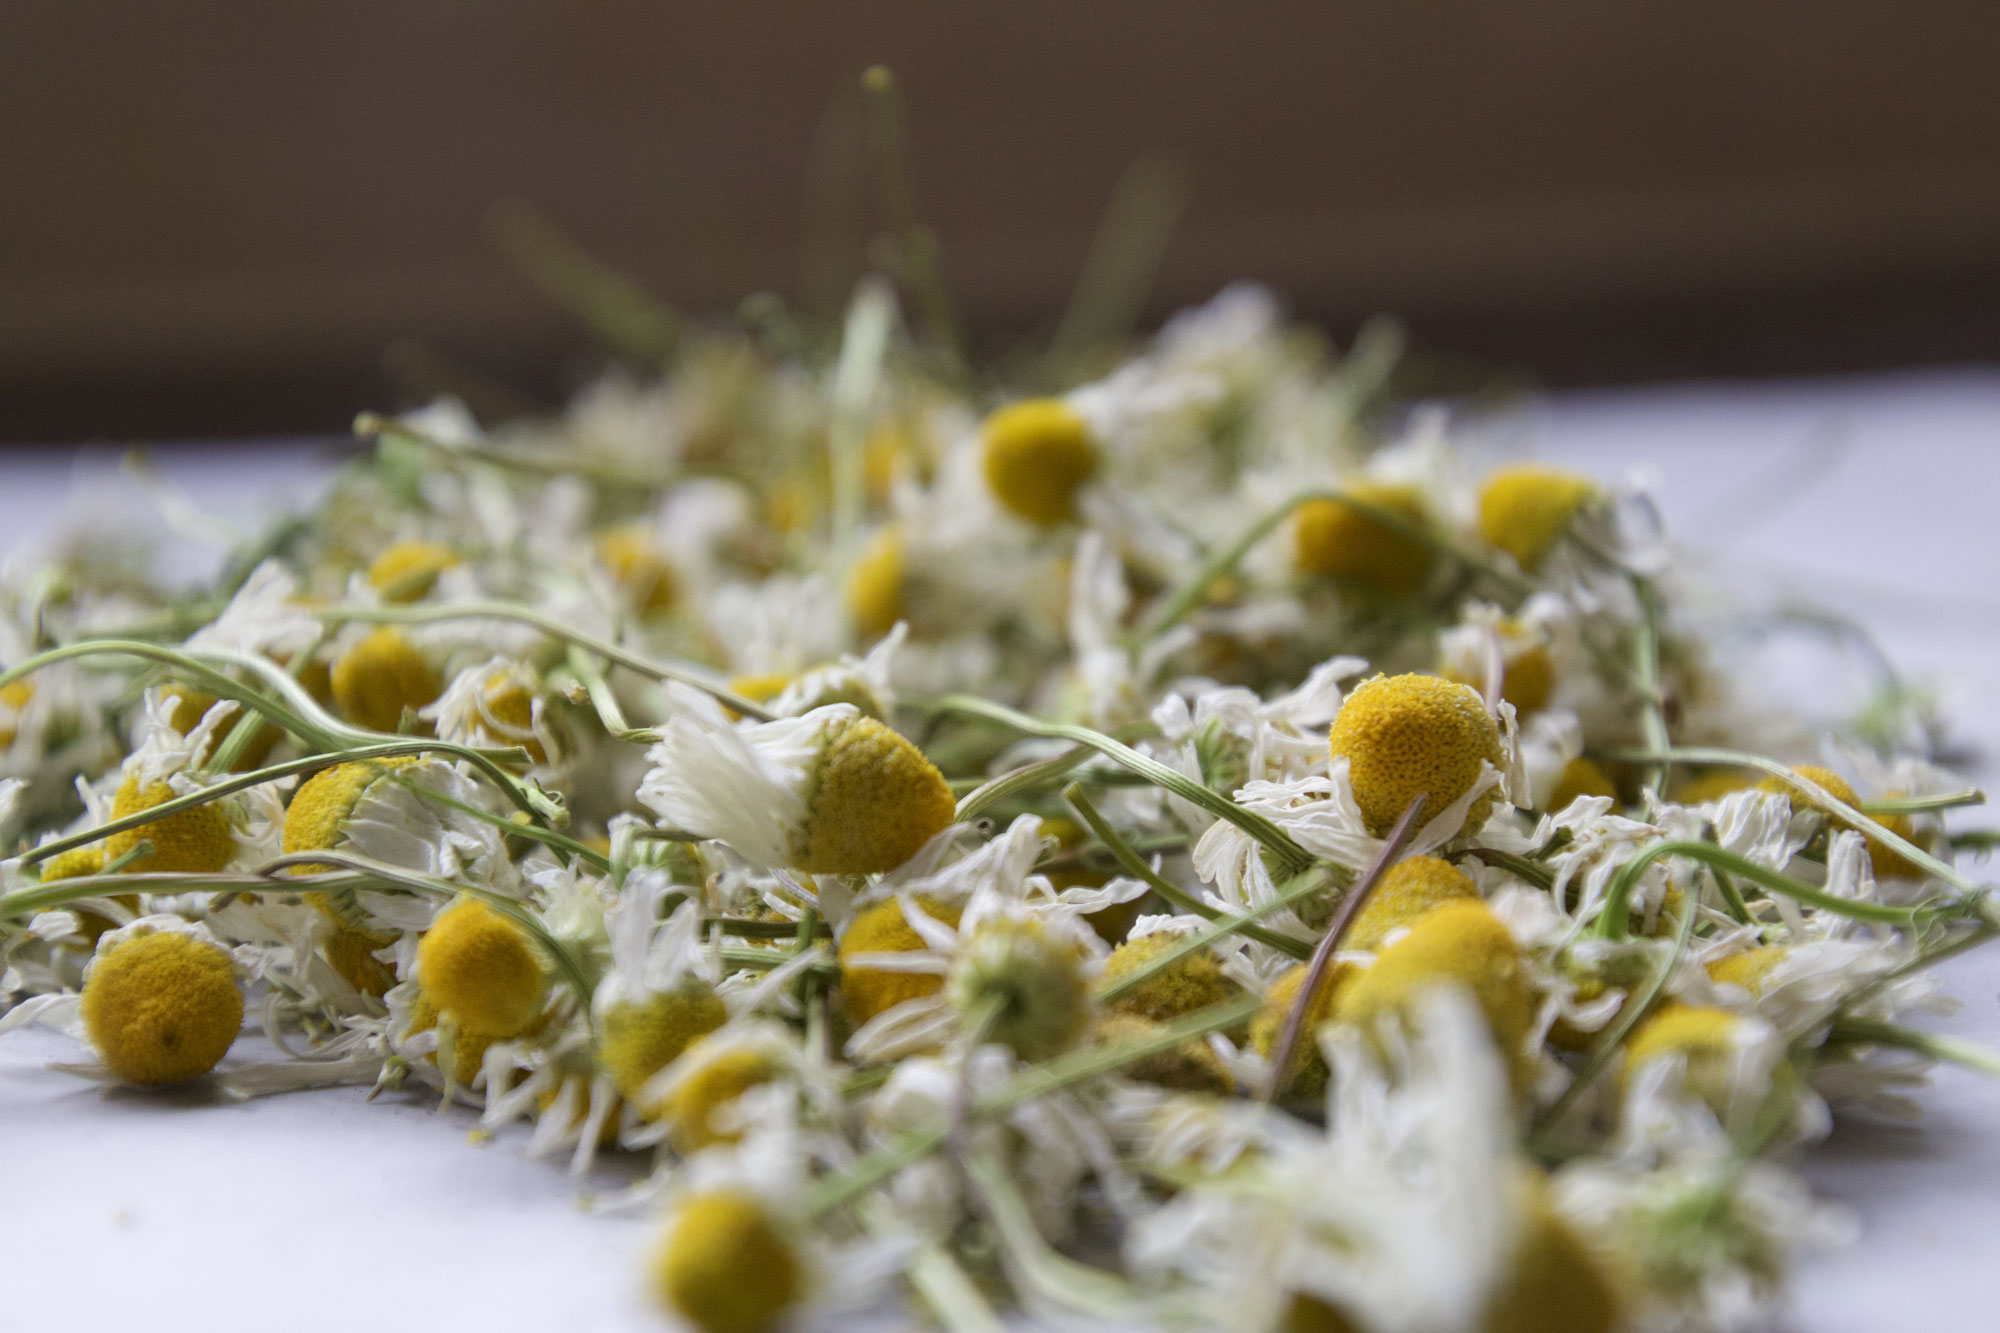 Bliss out in the garden with Chamomile.